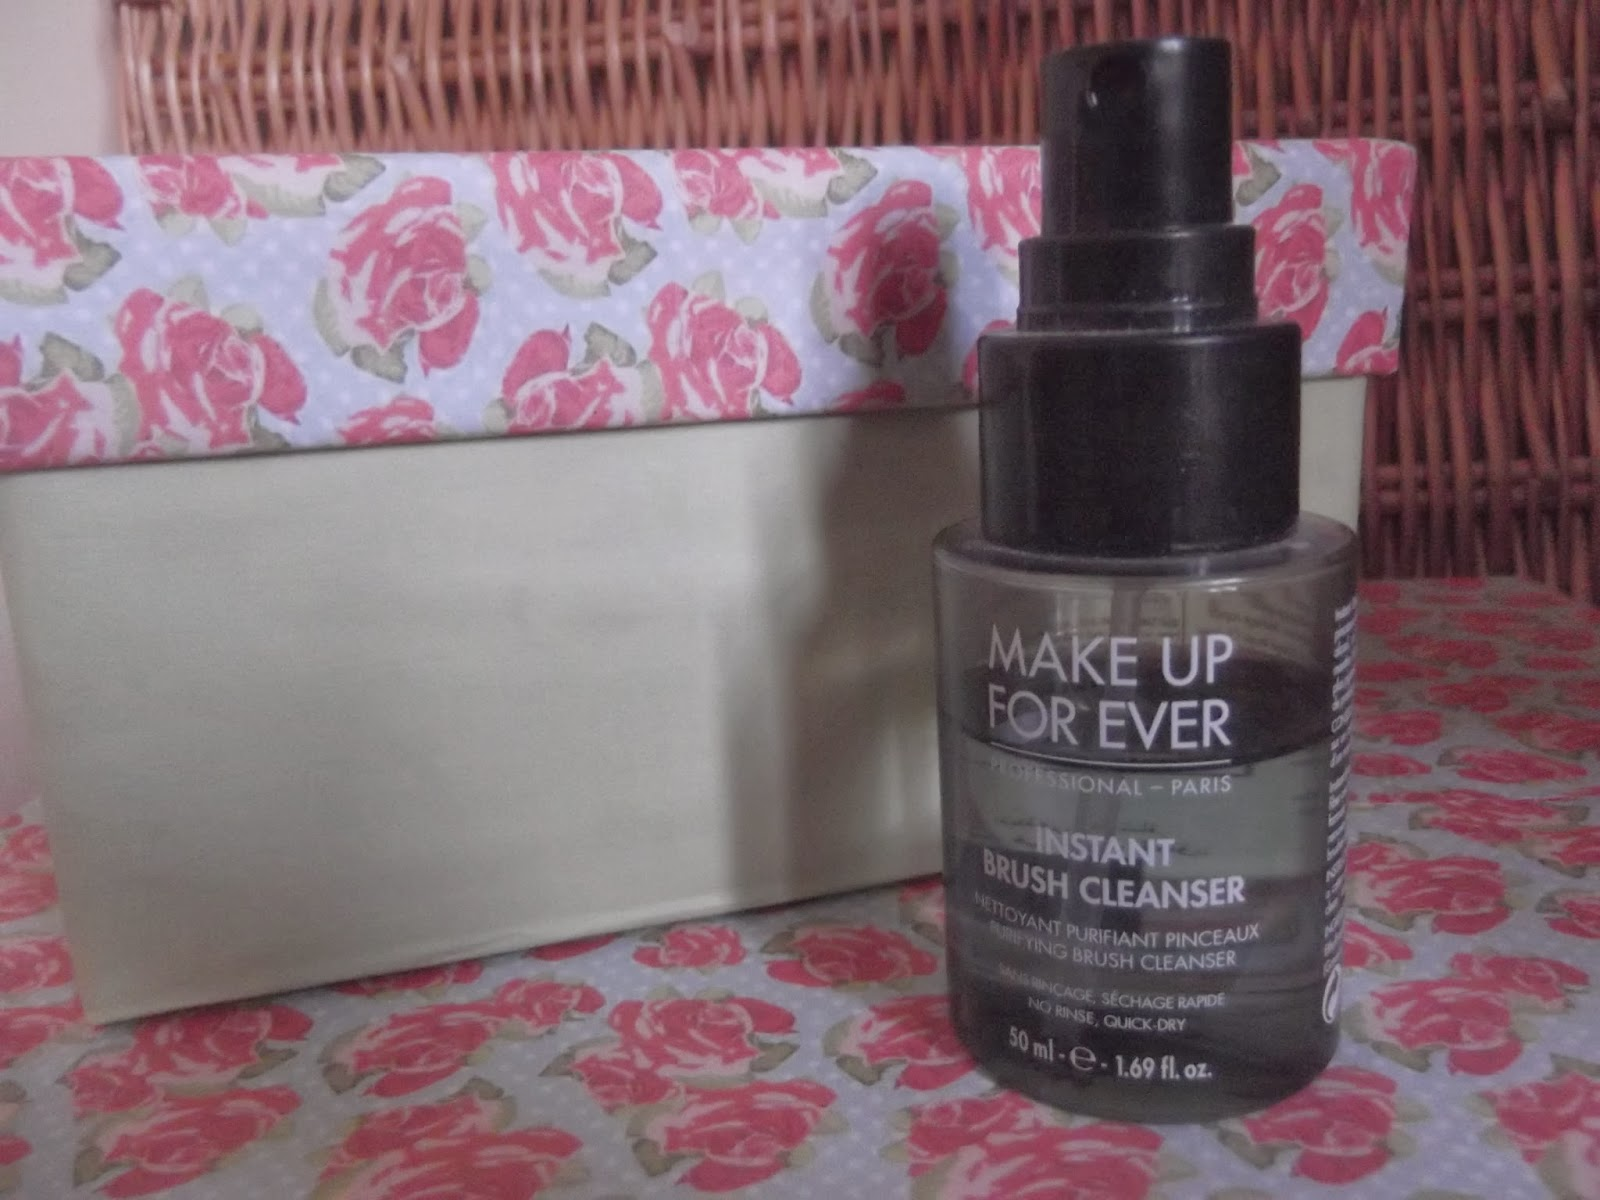 An image of Make Up For Ever Instant Brush Cleanser